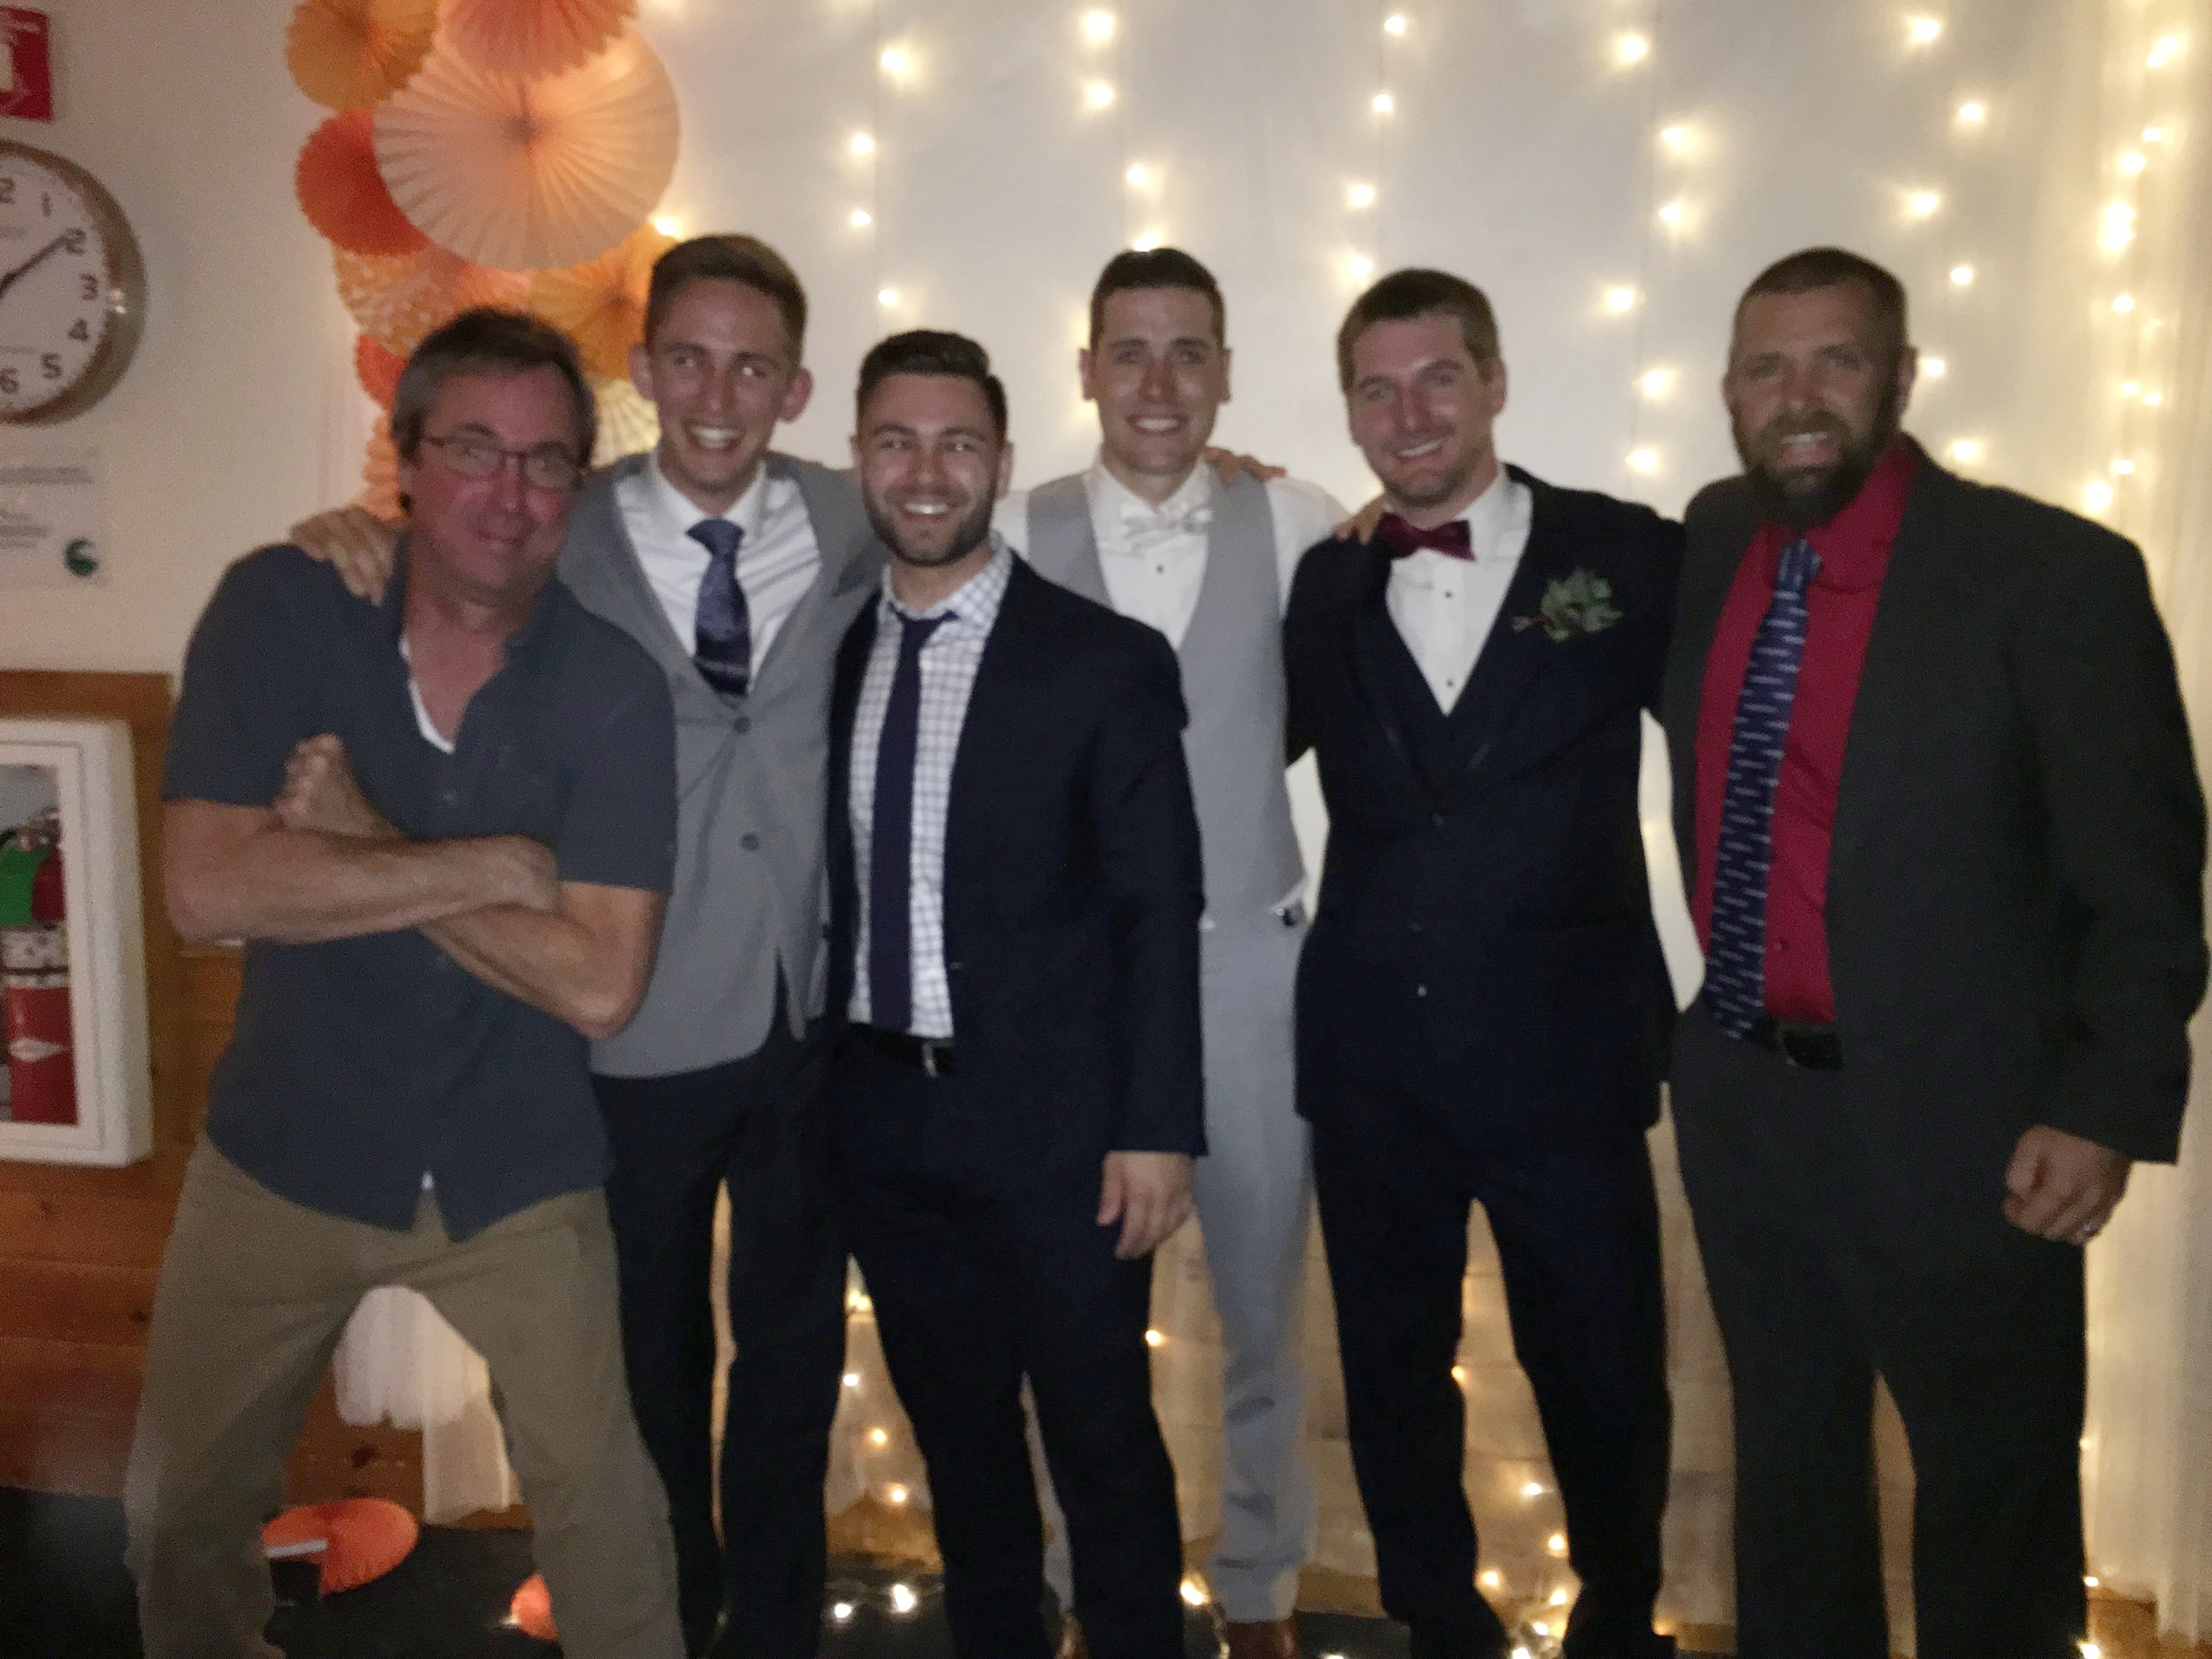 Colton's Wedding, with (from left) former Coach Neilsen, Brandon McCoo (MVXC '13), Matt Doyle (MVXC '15), the groom, Colton Ham (MVXC '12), Derek Moller (MVXC '10), Officiant and Coach Irving